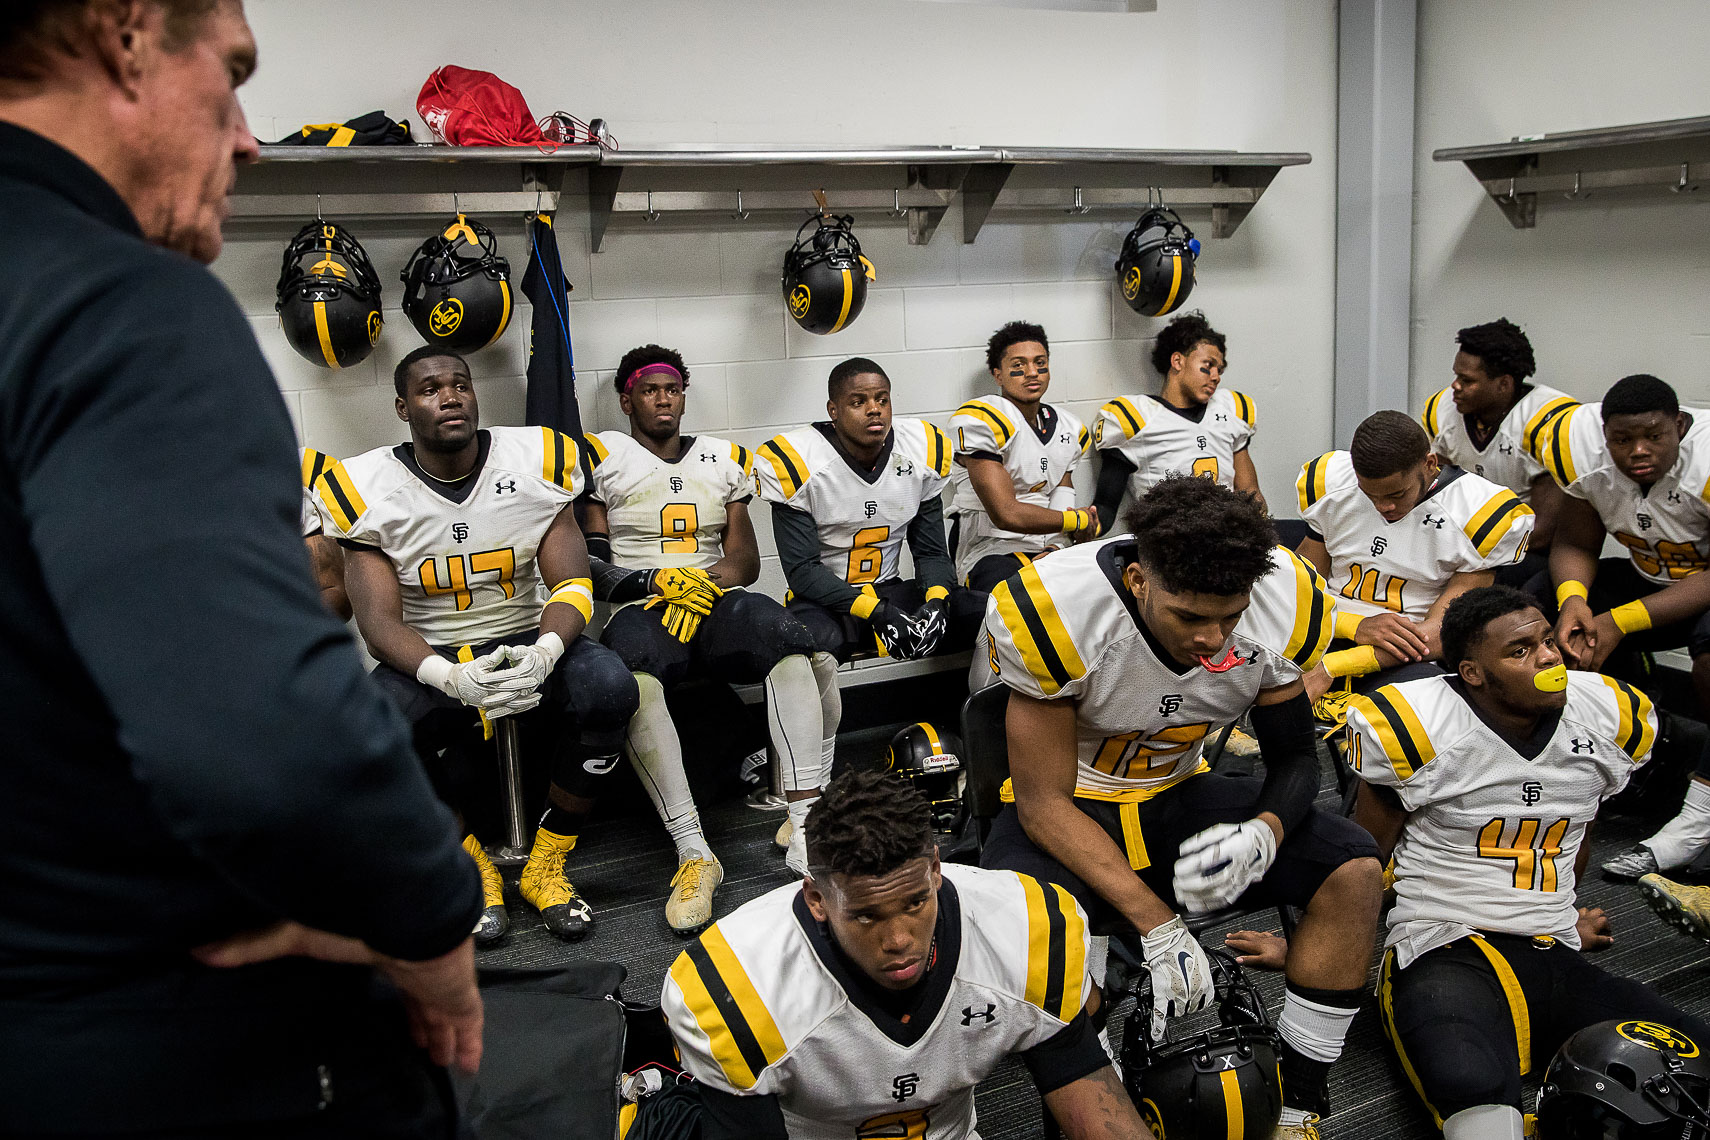 stfrances38_ St Frances Academy Panthers football Baltimore City poverty ESPN documentary MIAA Champions youth football team versus IMG Academy football Bradenton Florida Under Armour emotional sports p